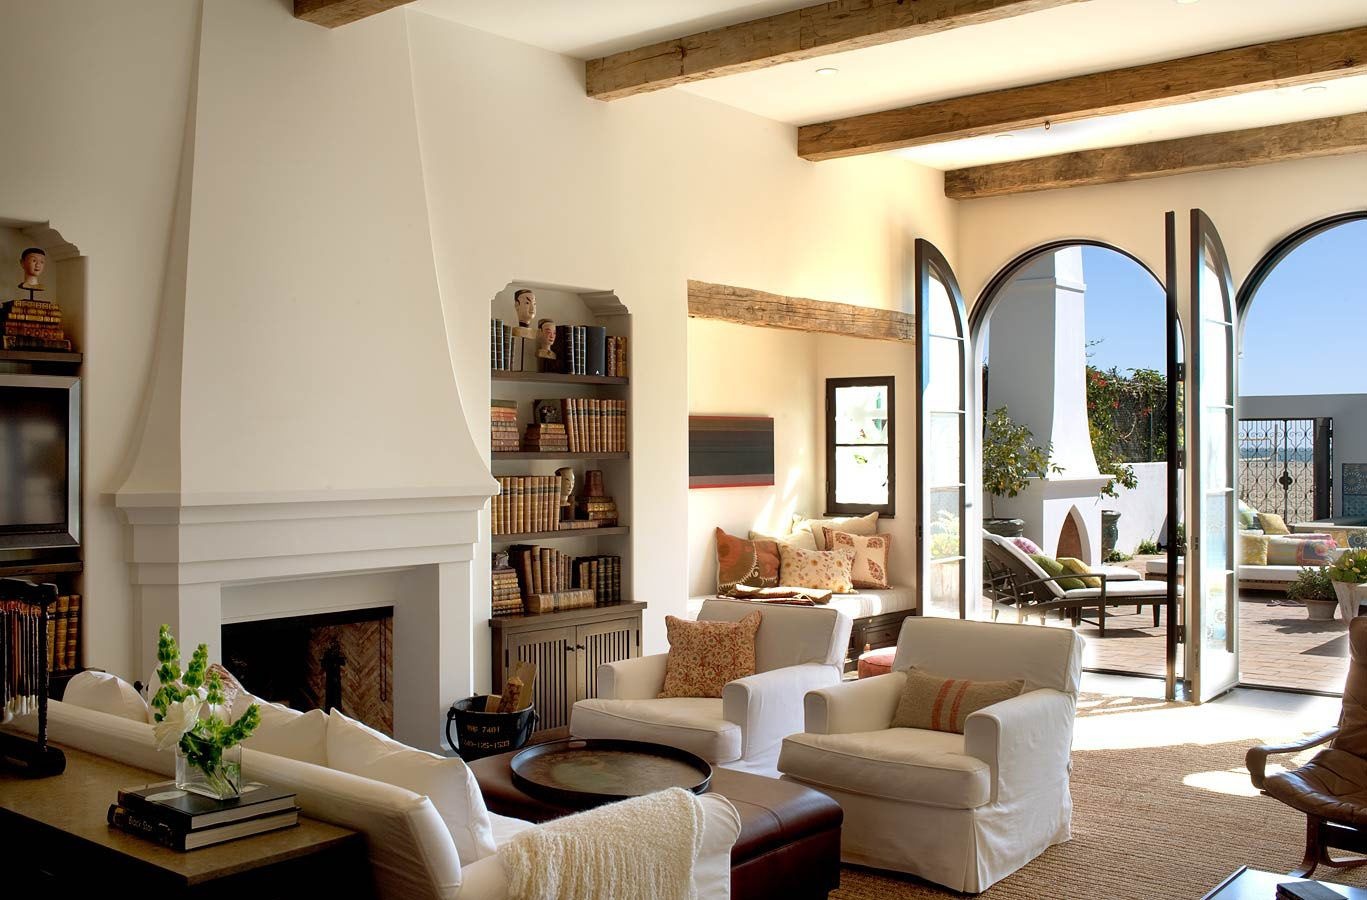 Living Room Furniture Ideas For Any Style Of Decor Mediterranean Living Rooms Colonial Style Interior Mediterranean Styles Interior